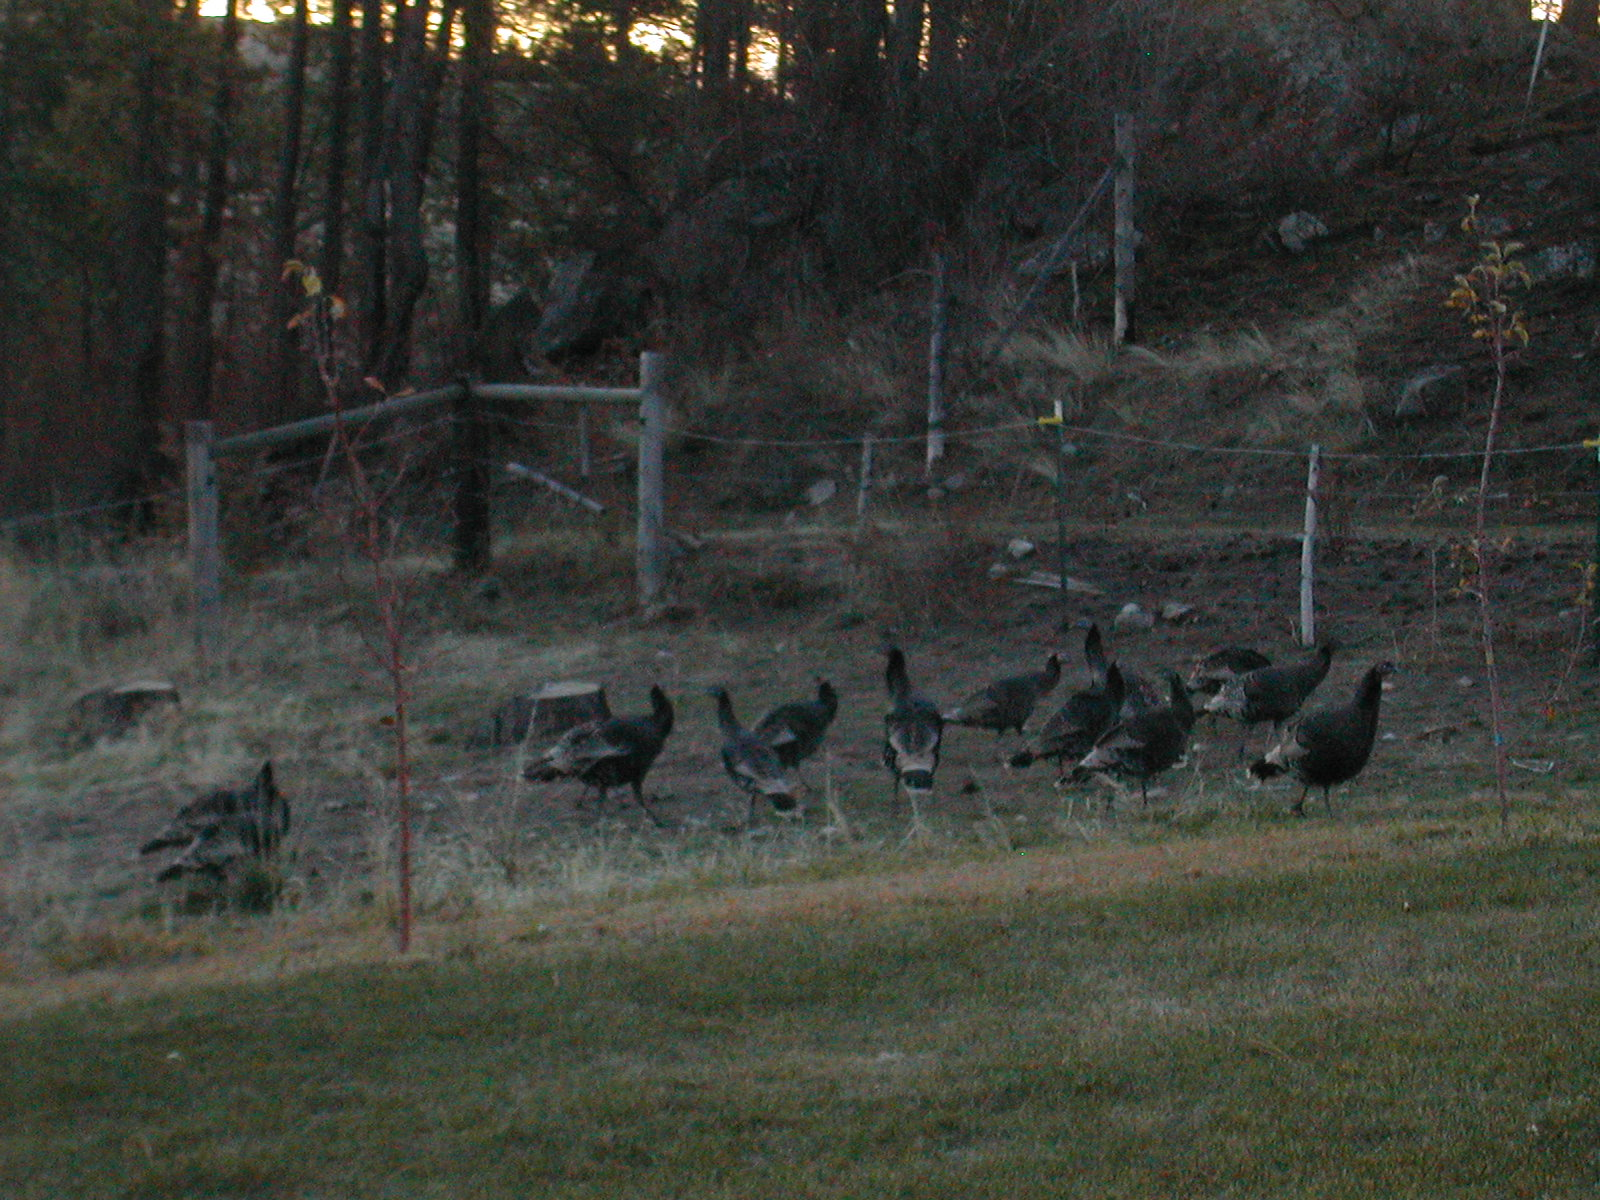 Wild turkeys! Fall 2010